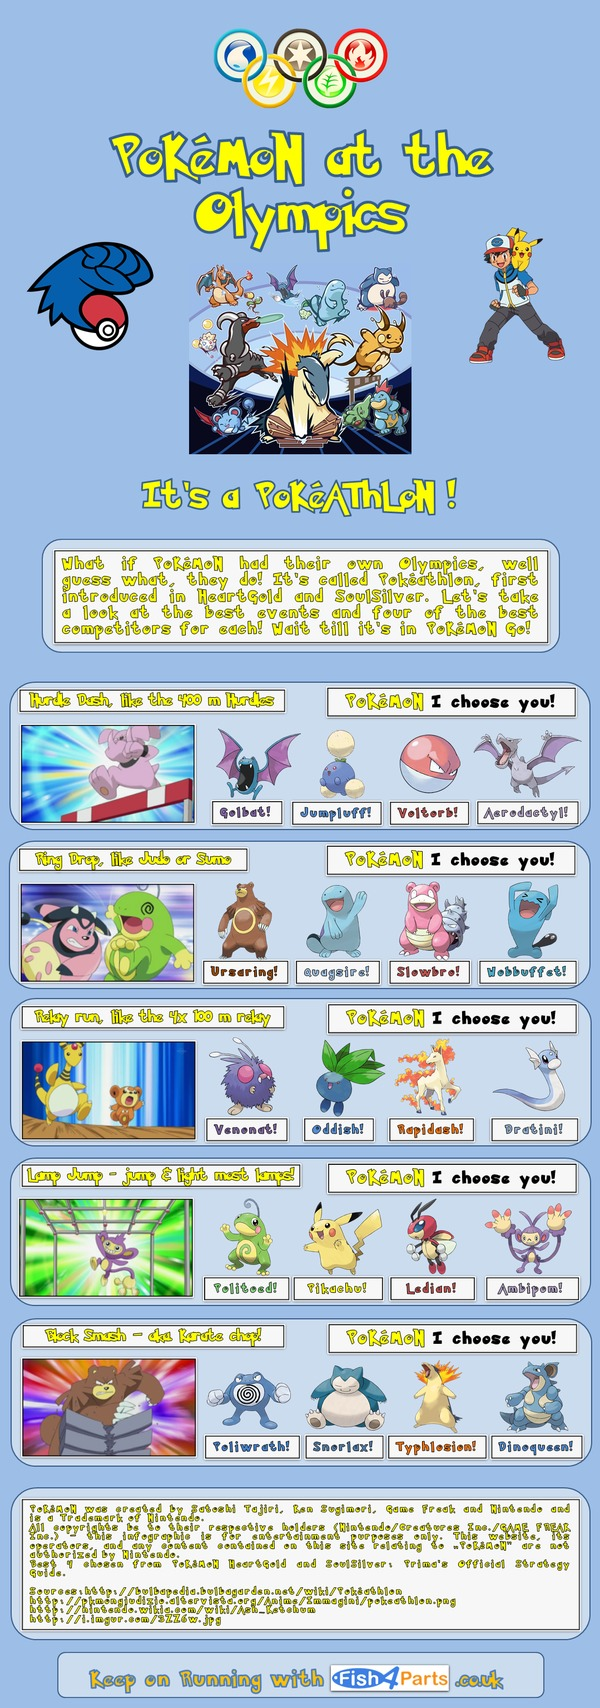 Pokemon Olympics Infographic